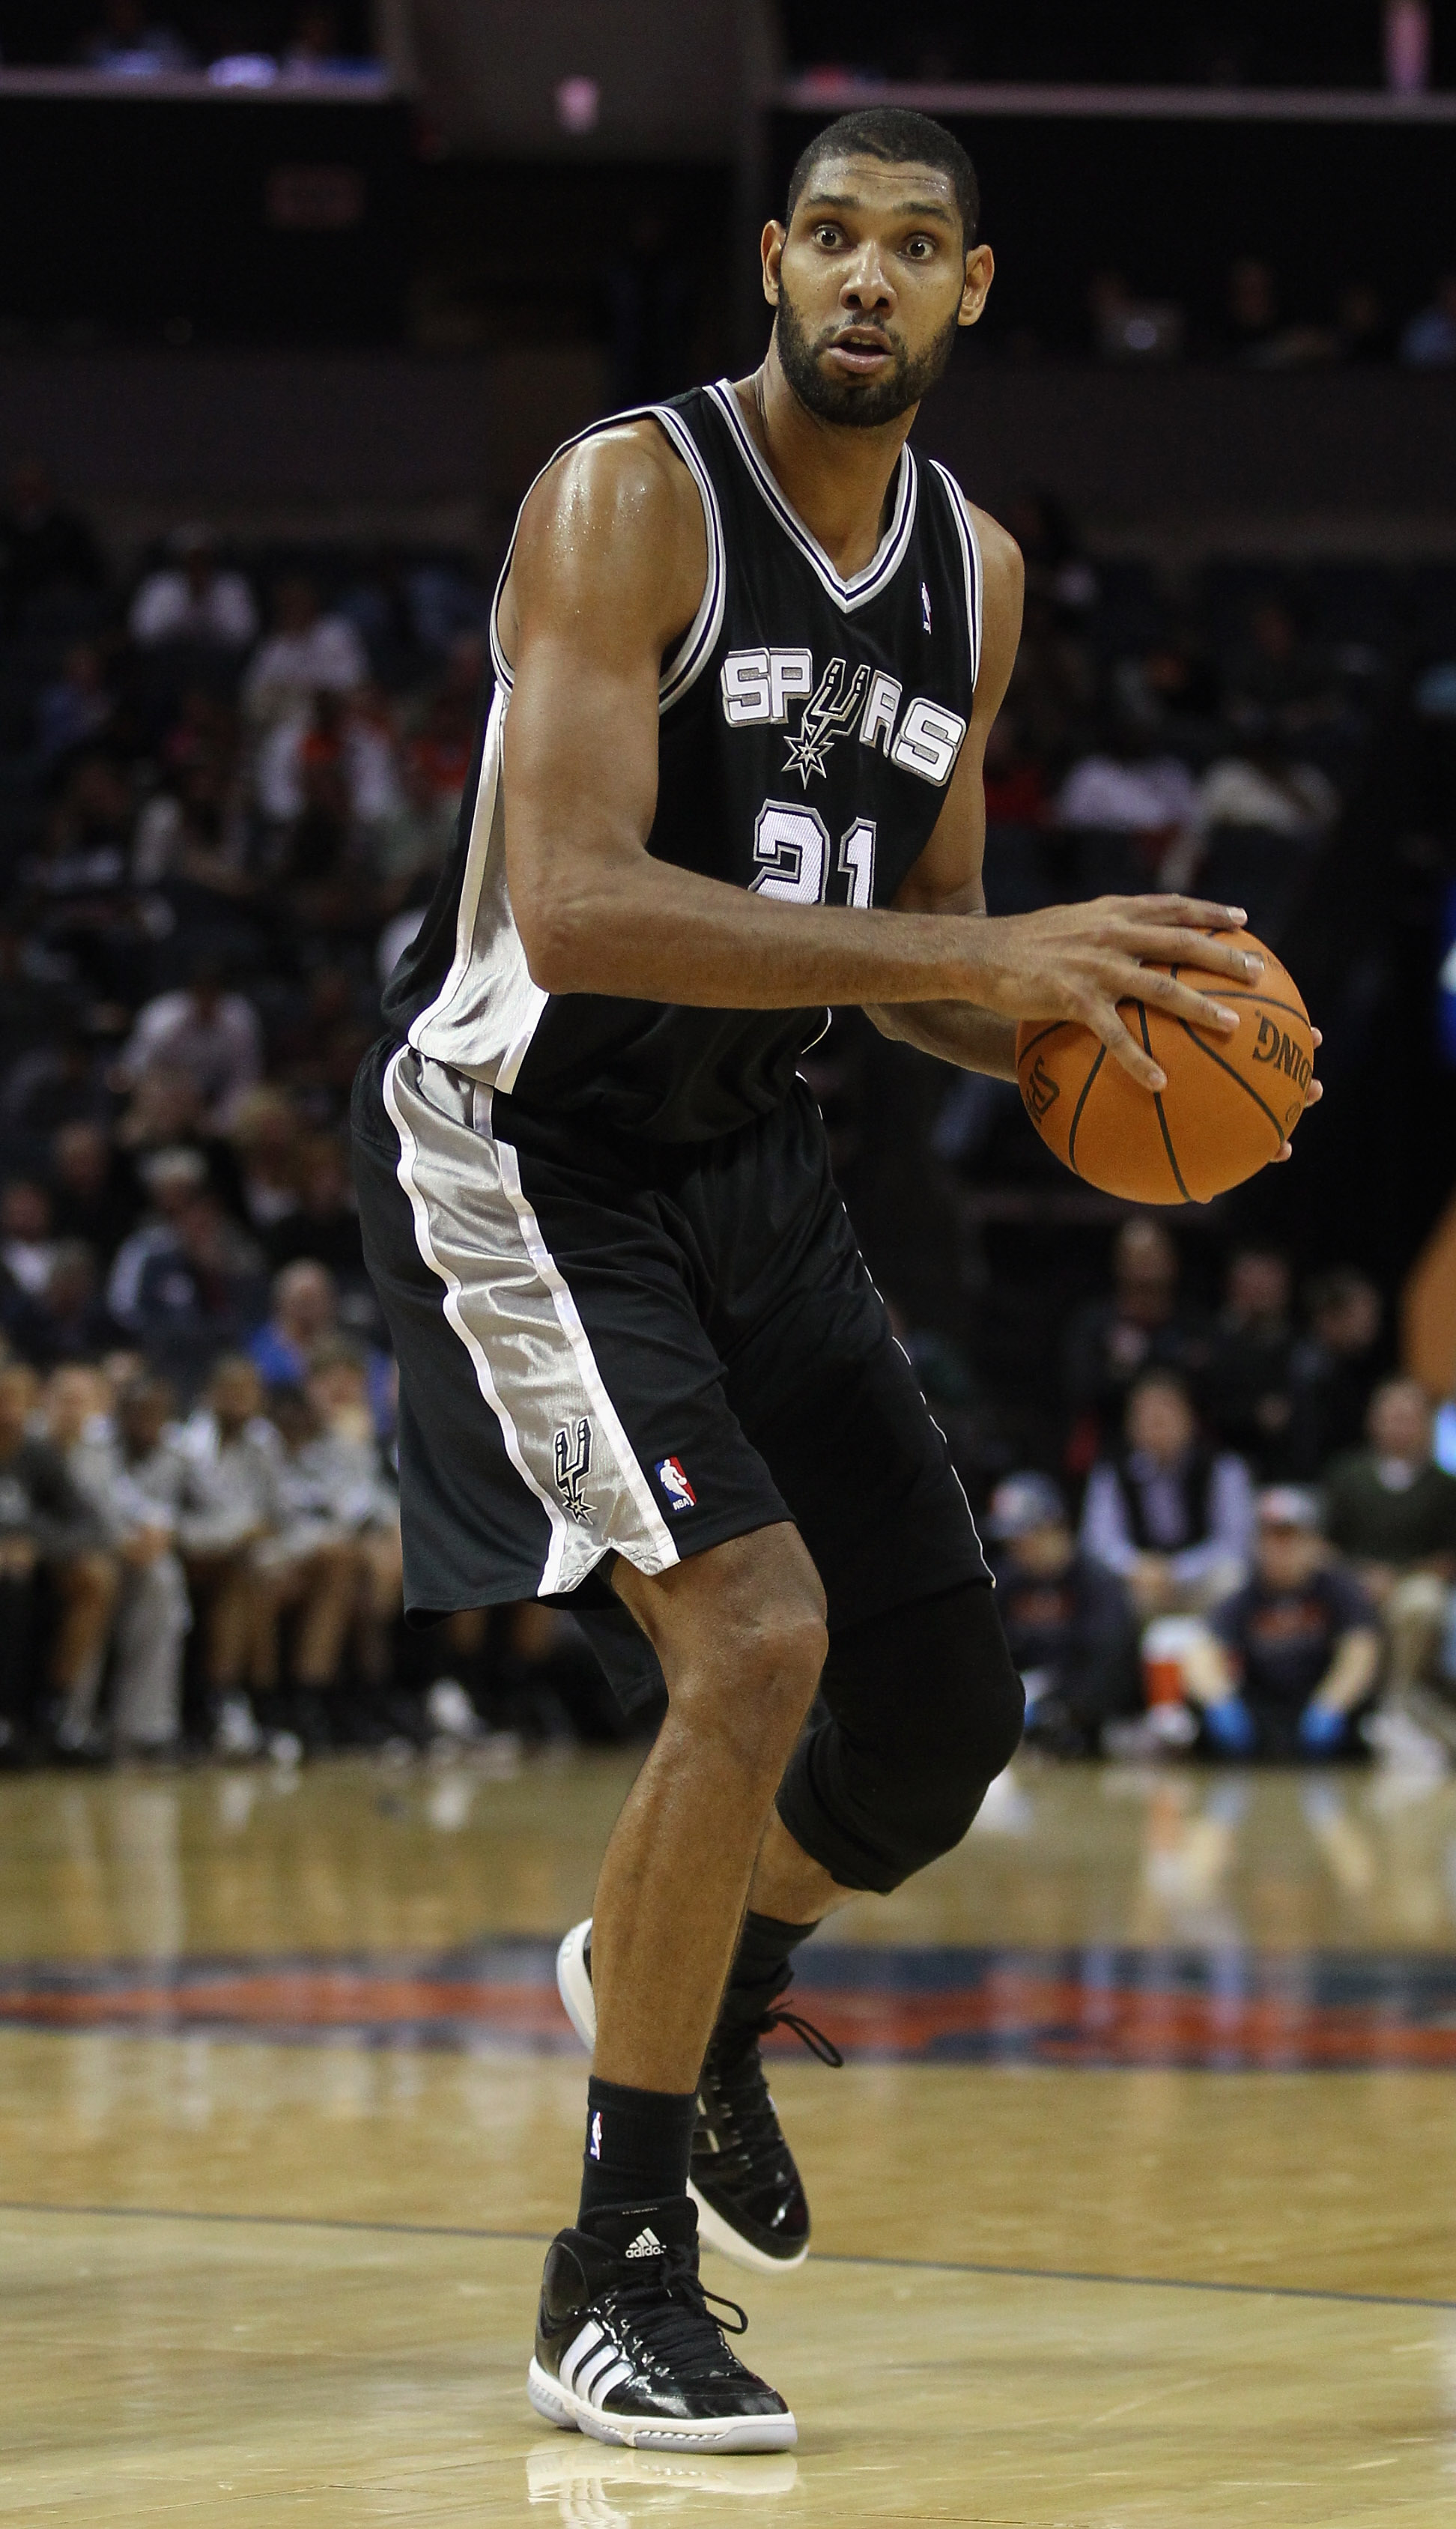 CHARLOTTE, NC - NOVEMBER 08:  Tim Duncan #21 of the San Antonio Spurs against the Charlotte Bobcats during their game at Time Warner Cable Arena on November 8, 2010 in Charlotte, North Carolina.  NOTE TO USER: User expressly acknowledges and agrees that,